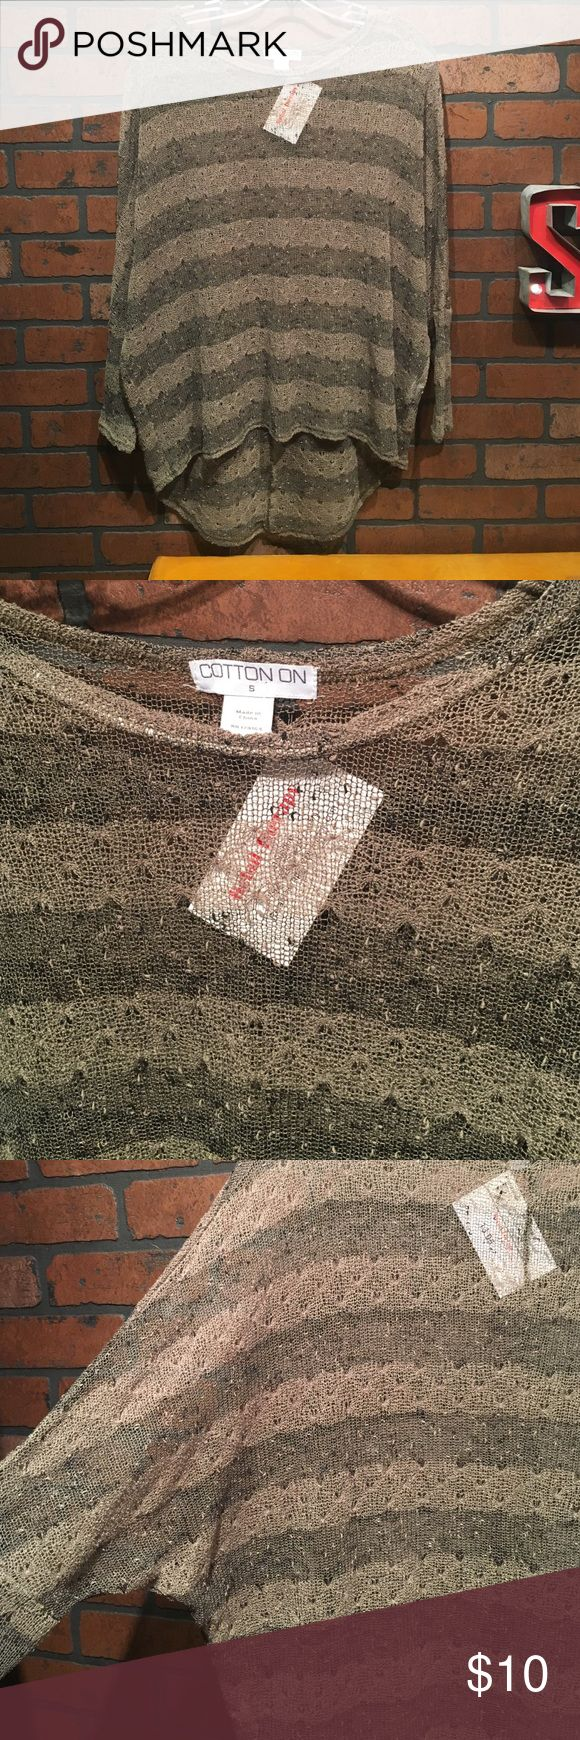 Cotton On light mesh top Super light and comfy! Olive green color! Brand New without tags Cotton On Tops